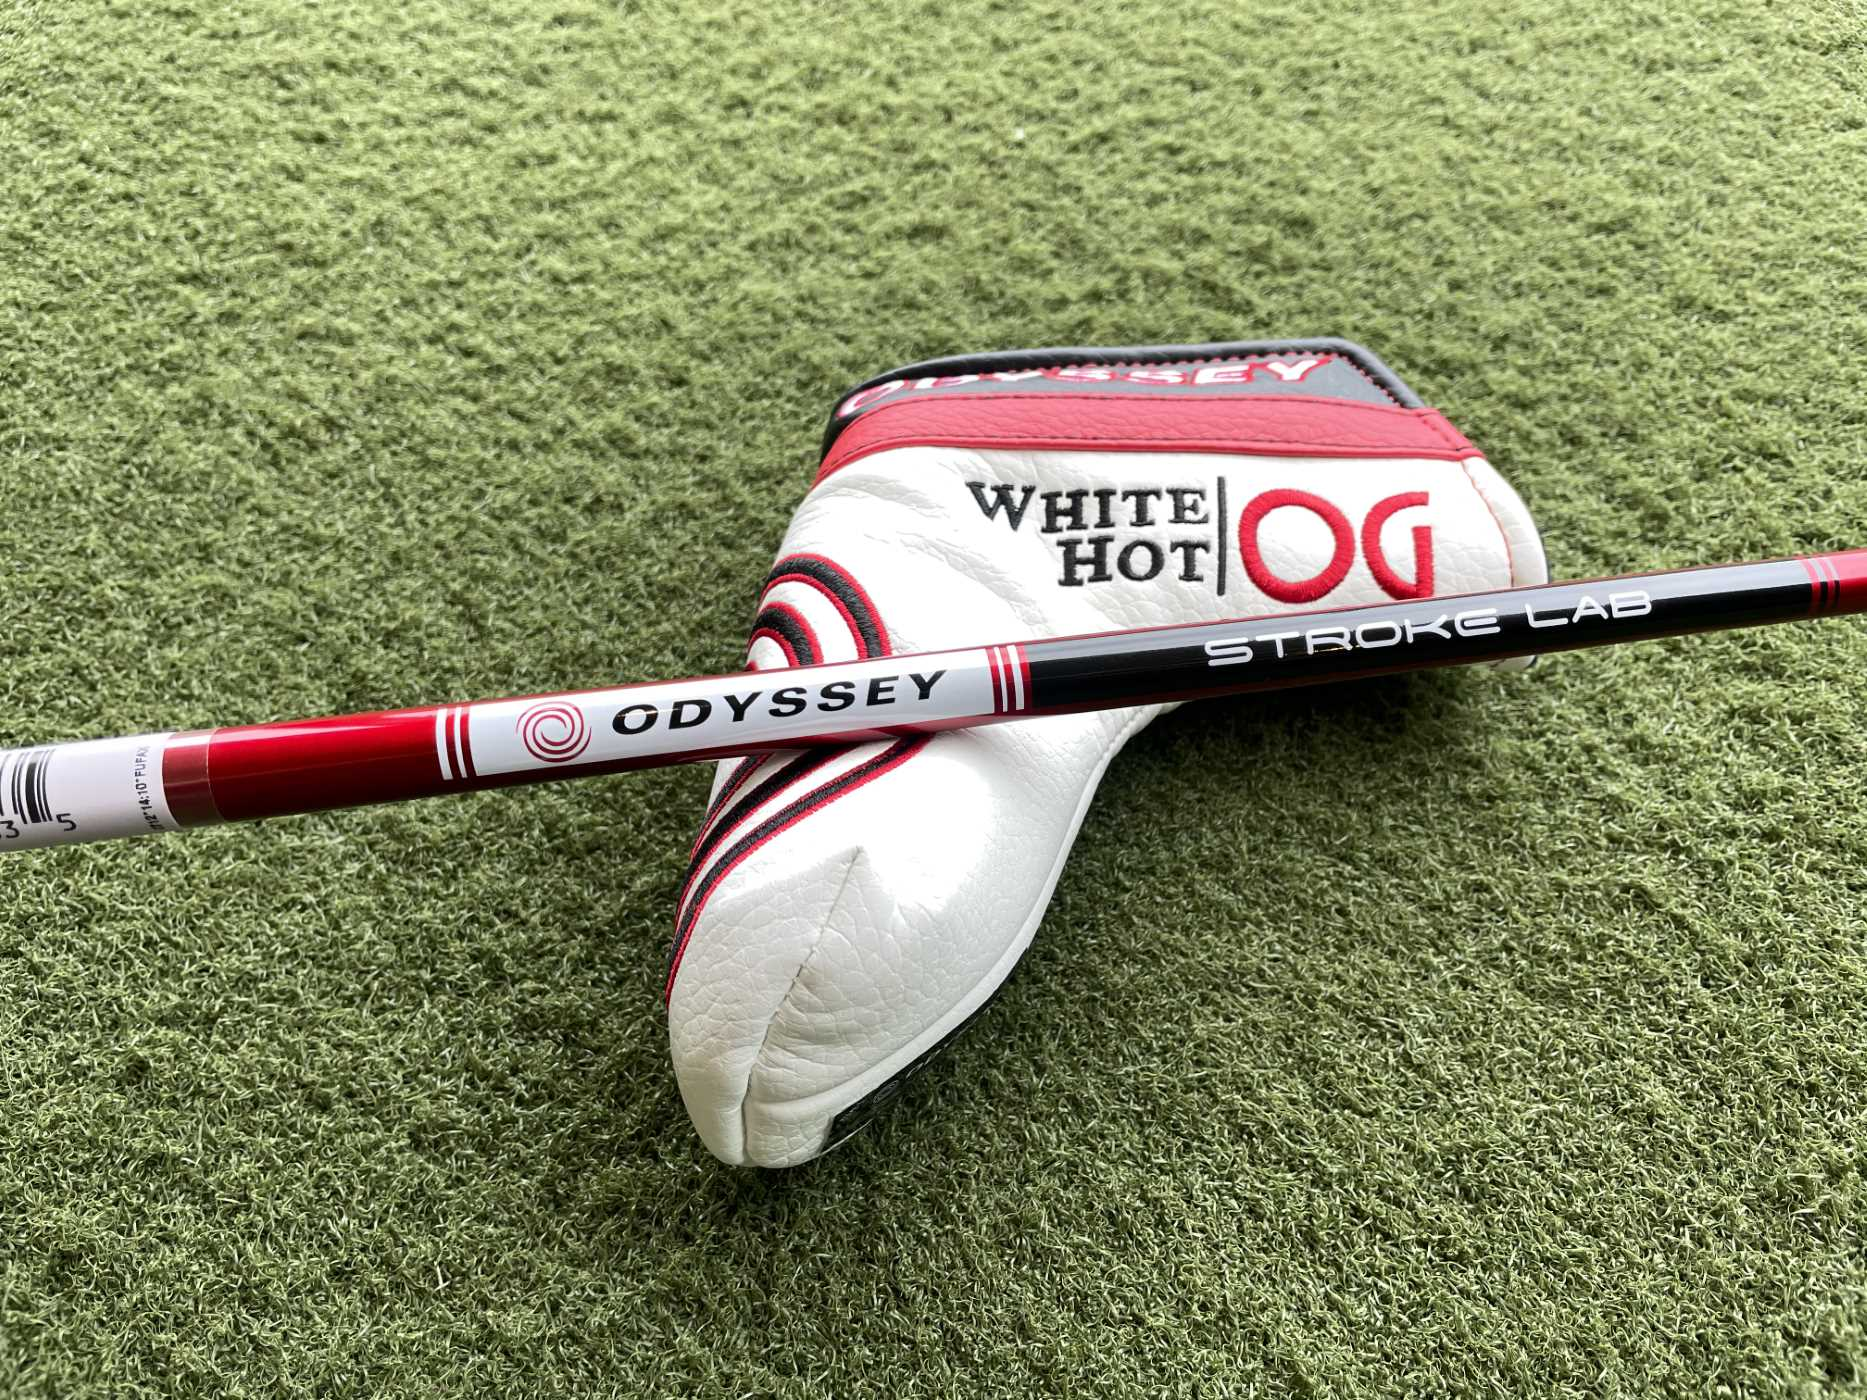 Some of the new Odyssey OG White hot putters are now in Cool Clubs NSW, QLD and VIC